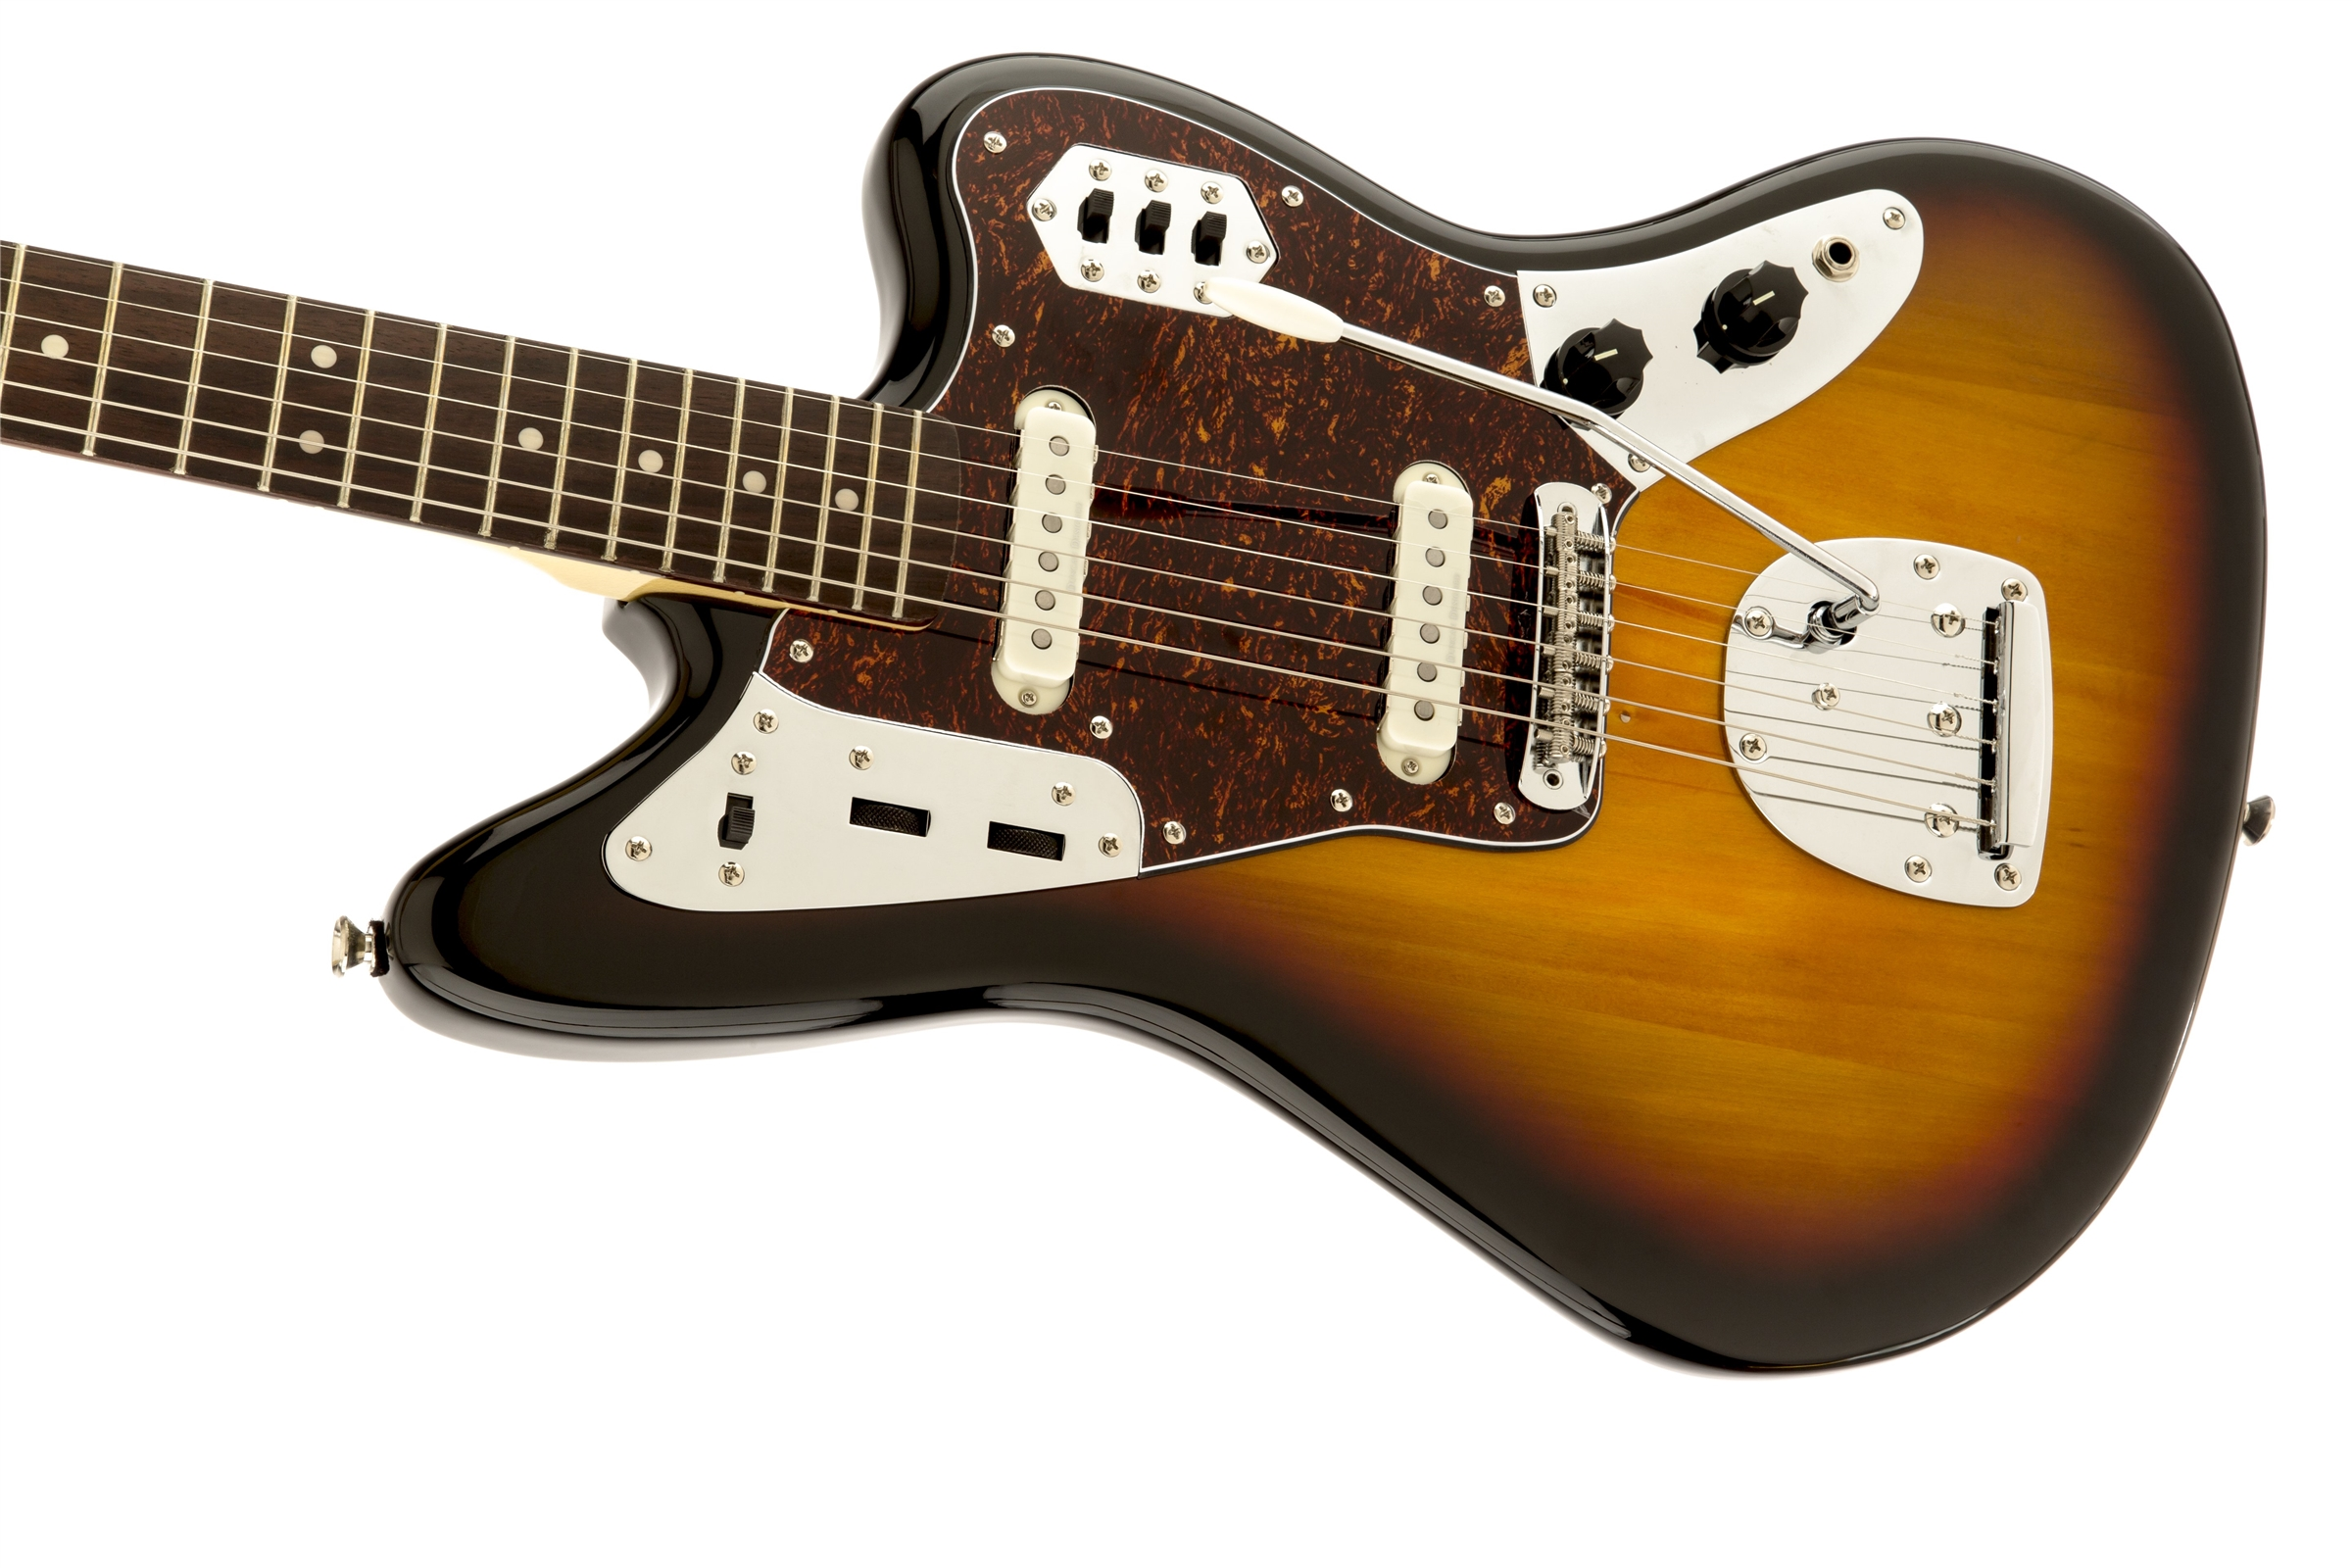 fender american professional jazzmaster wiring diagram for atv winch switch squier vintage modified jaguar rosewood fingerboard 3